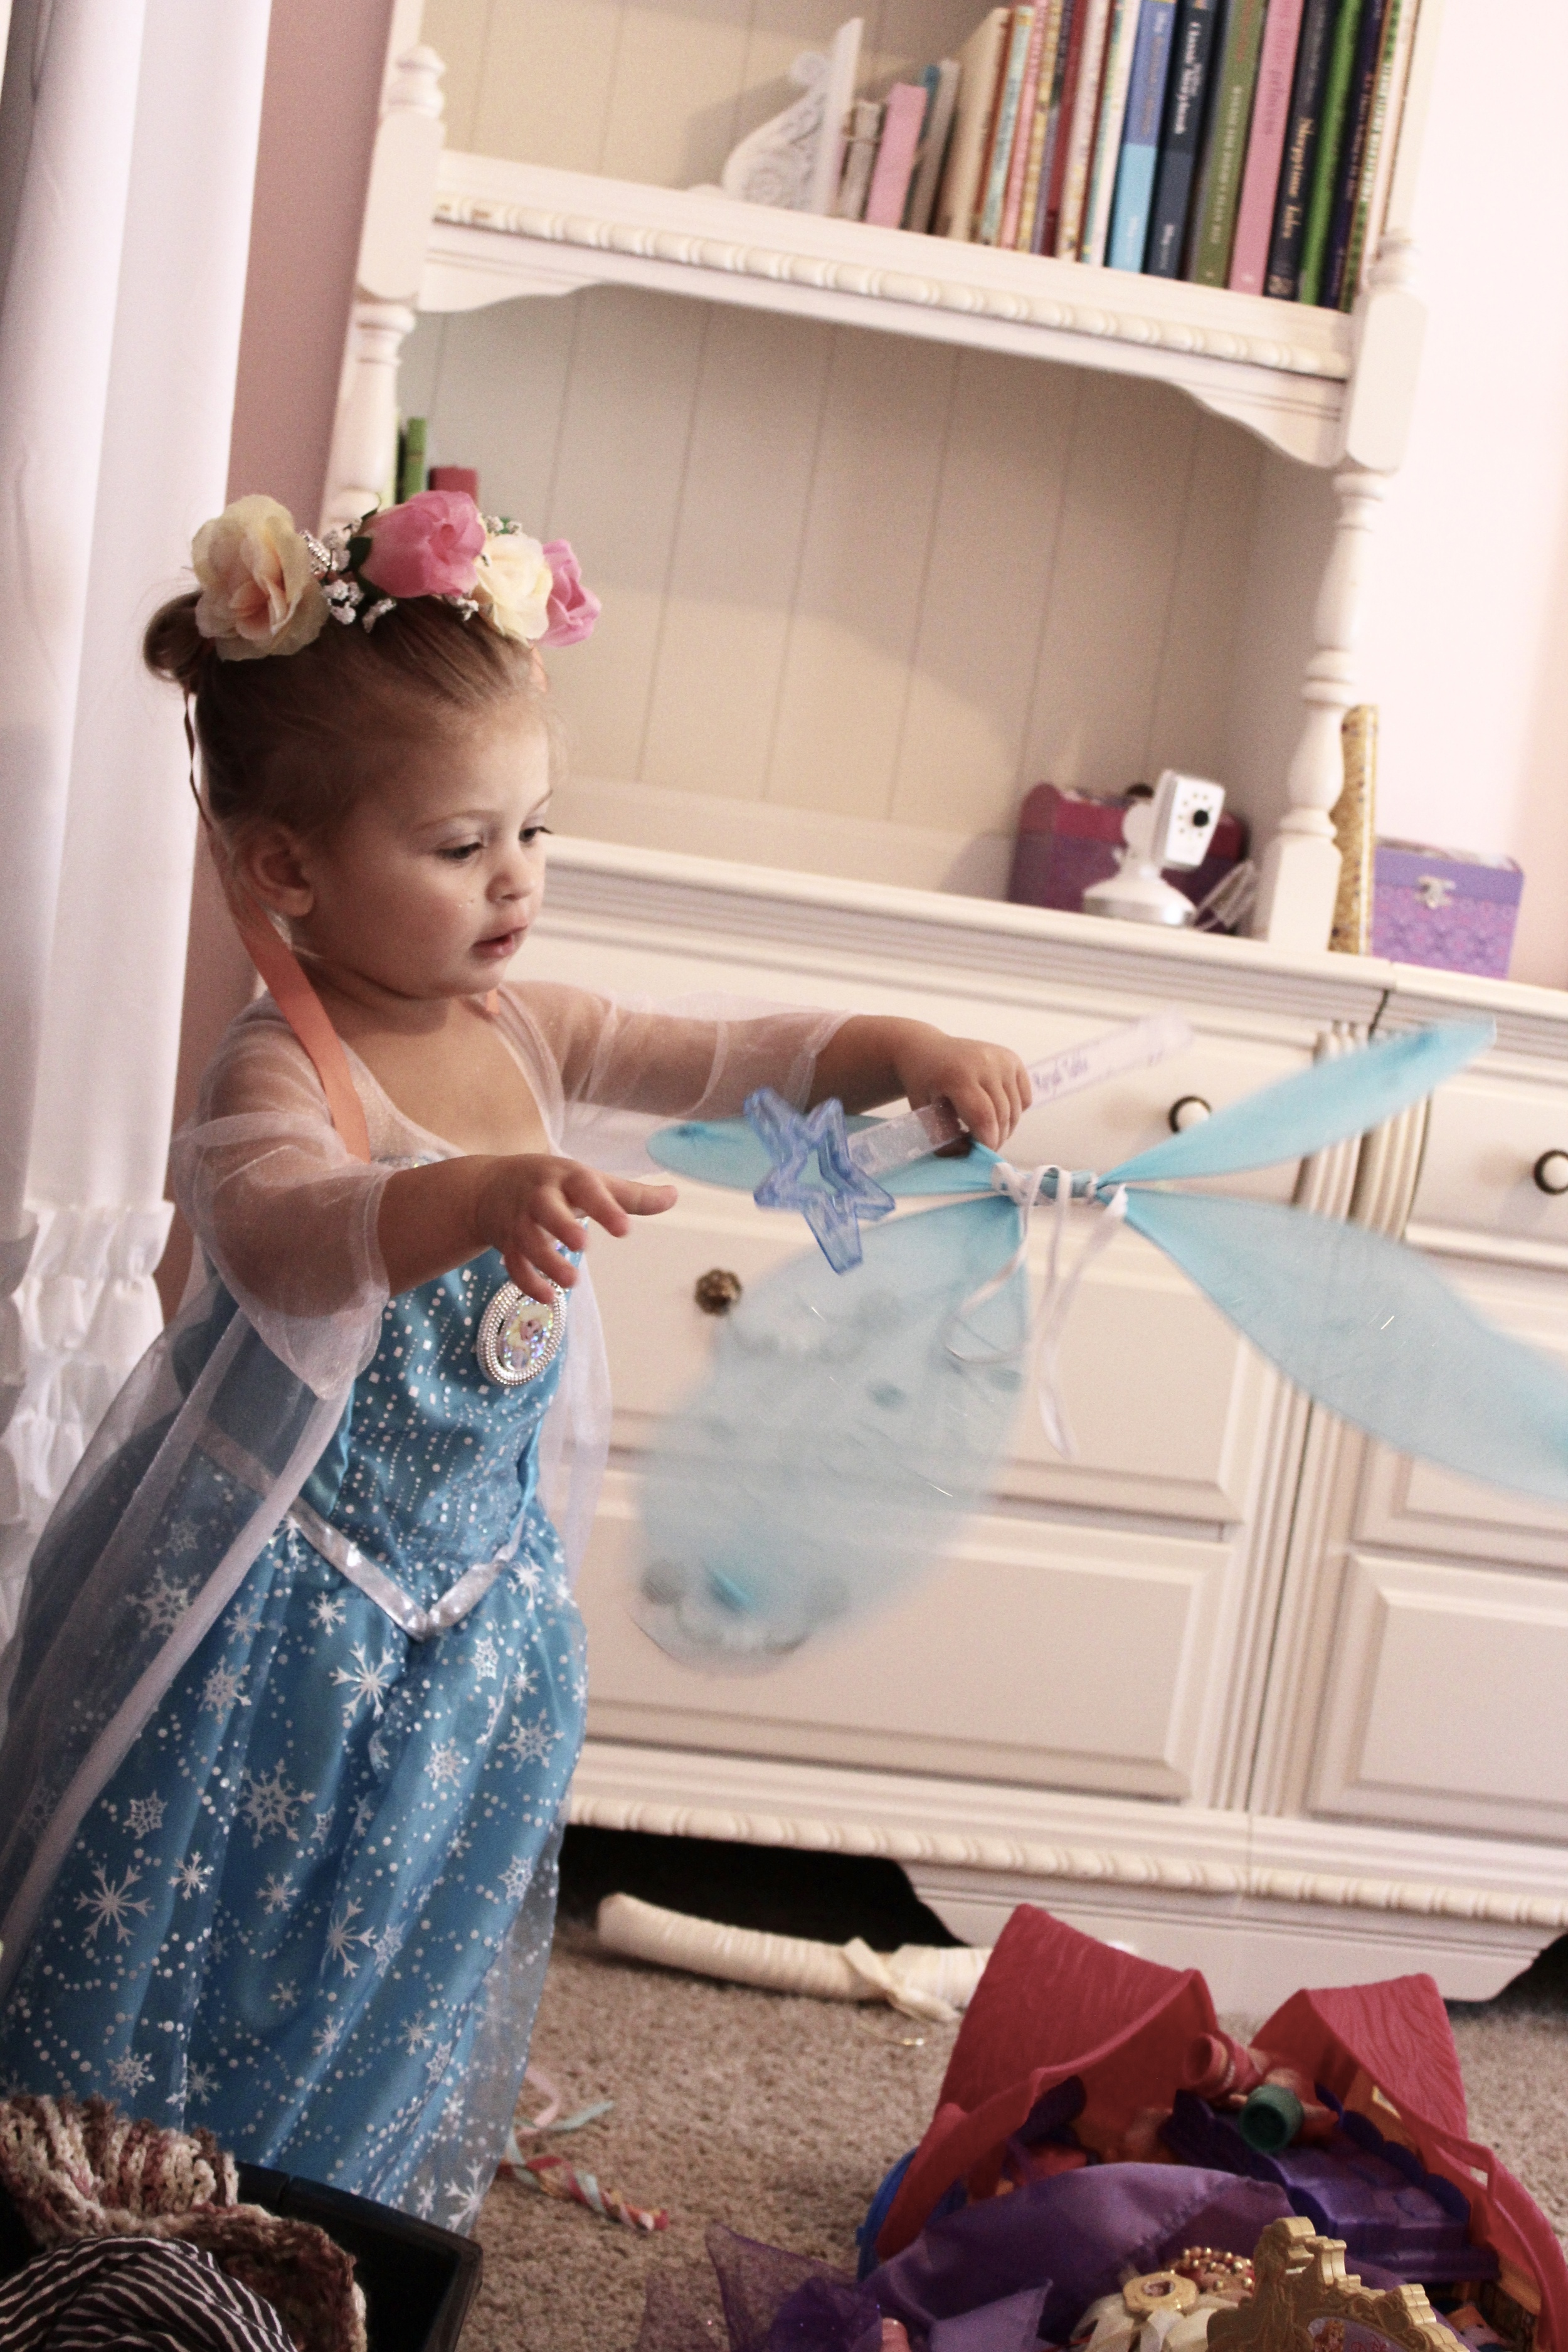 """I want to be a princess!"" is one of the most frequent exclamations heard in our home."